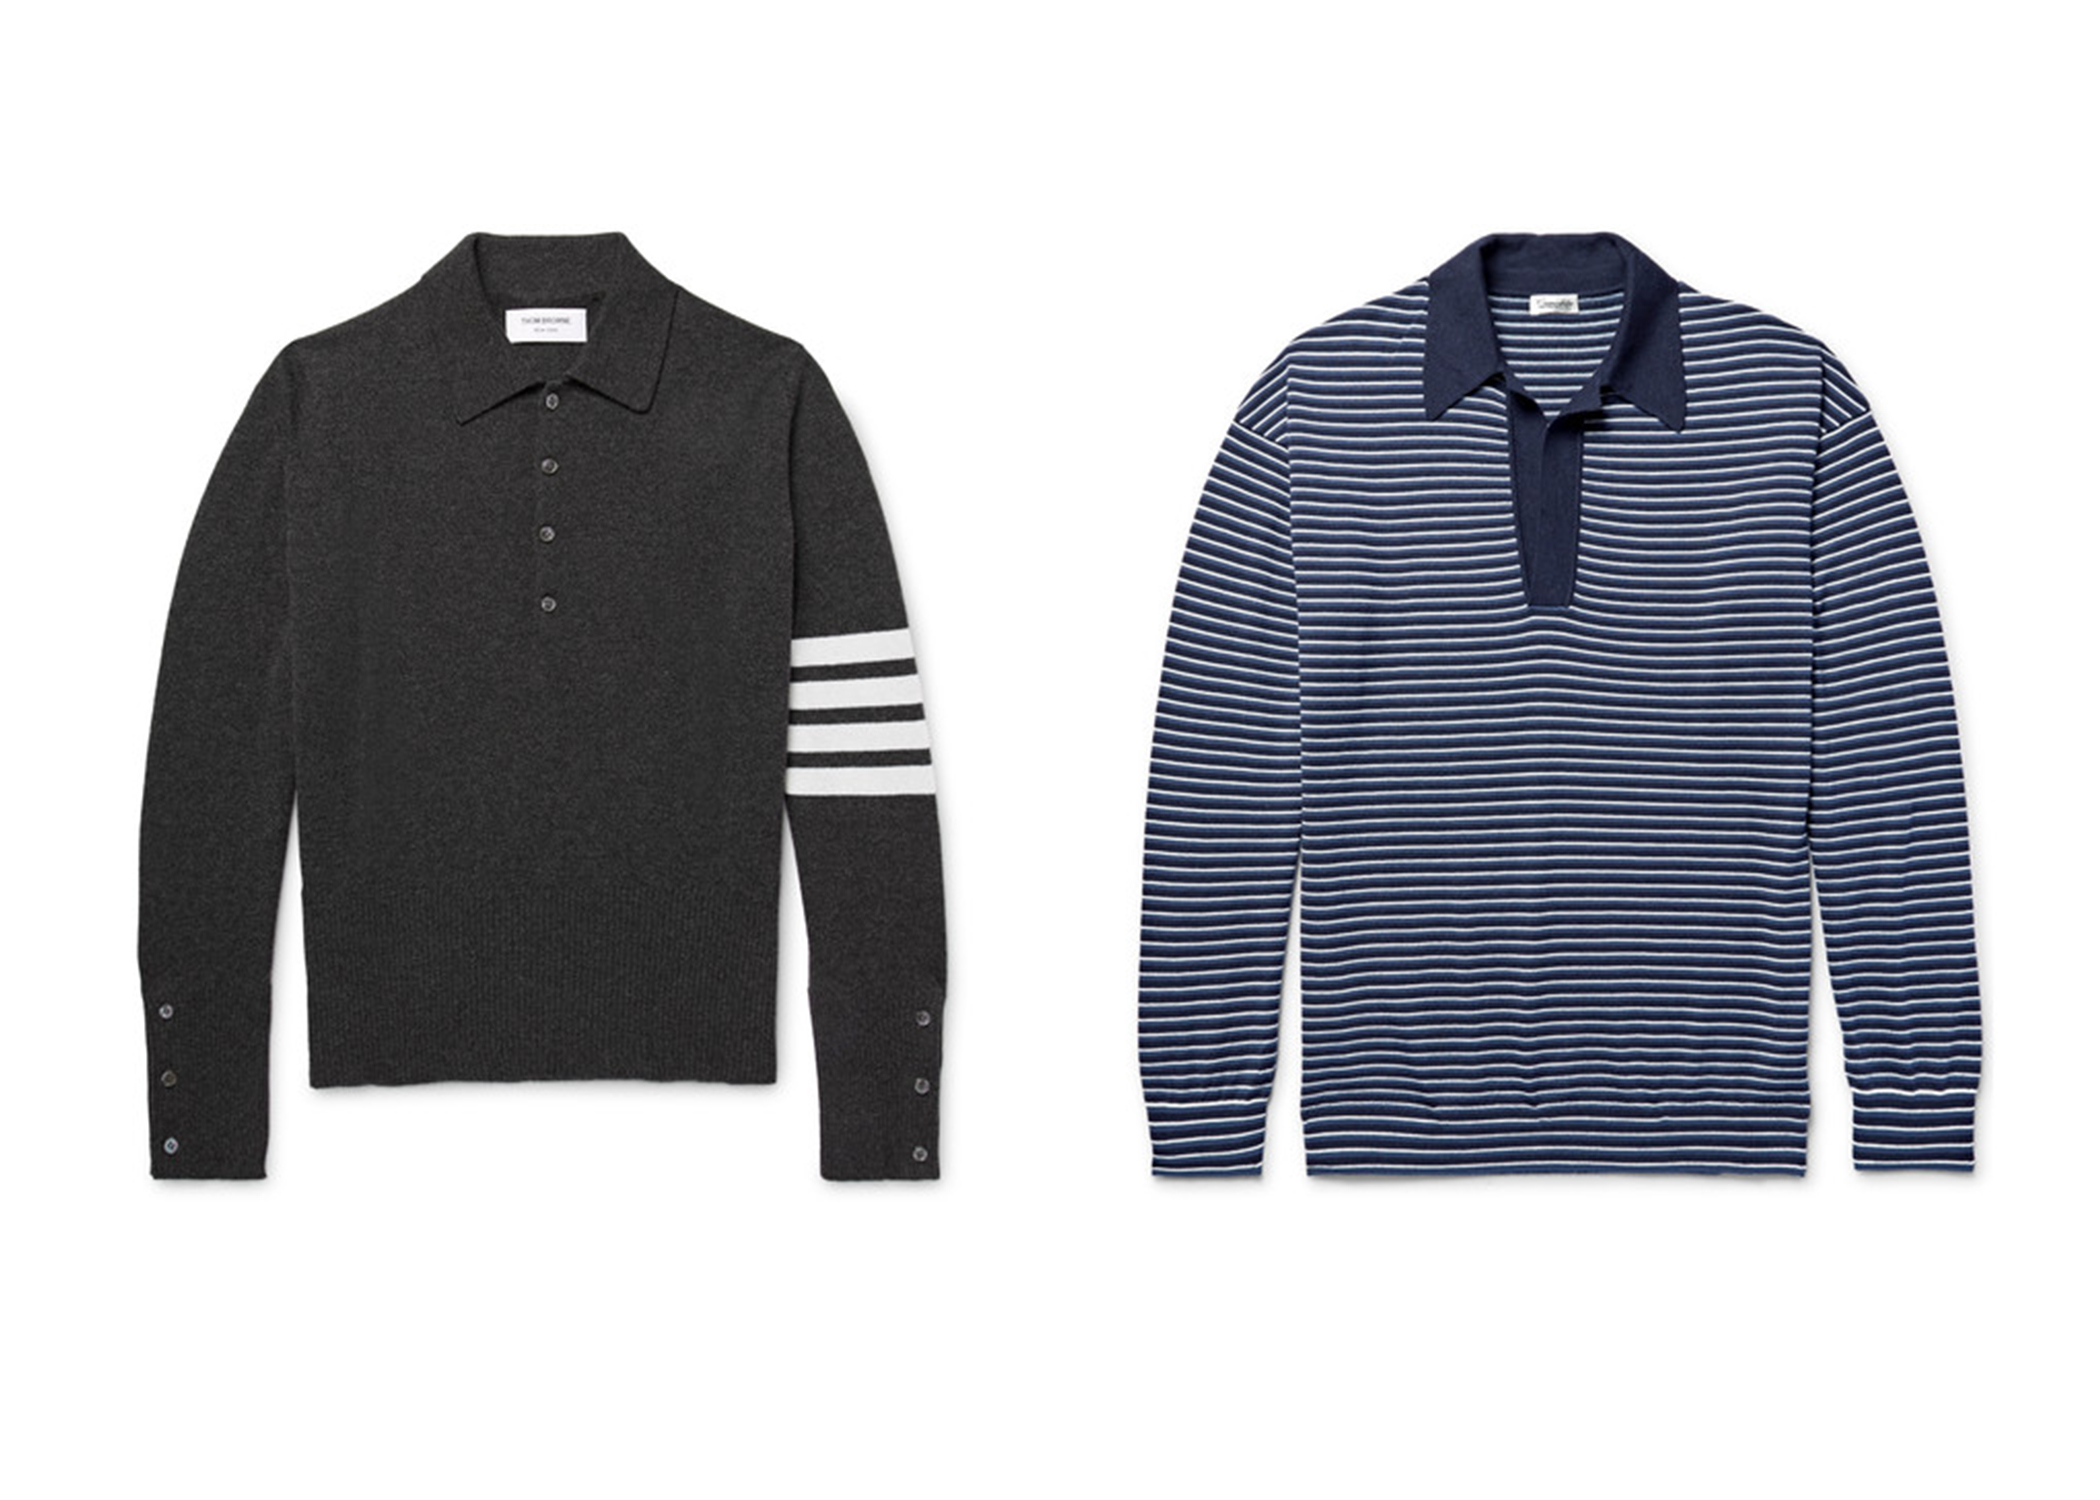 áo len nam Trái: THOM BROWNE Striped Cashmere Polo Shirt $1670 Phải: CAMOSHITA Striped Knitted Wool And Cashmere-Blend Polo Shirt $450